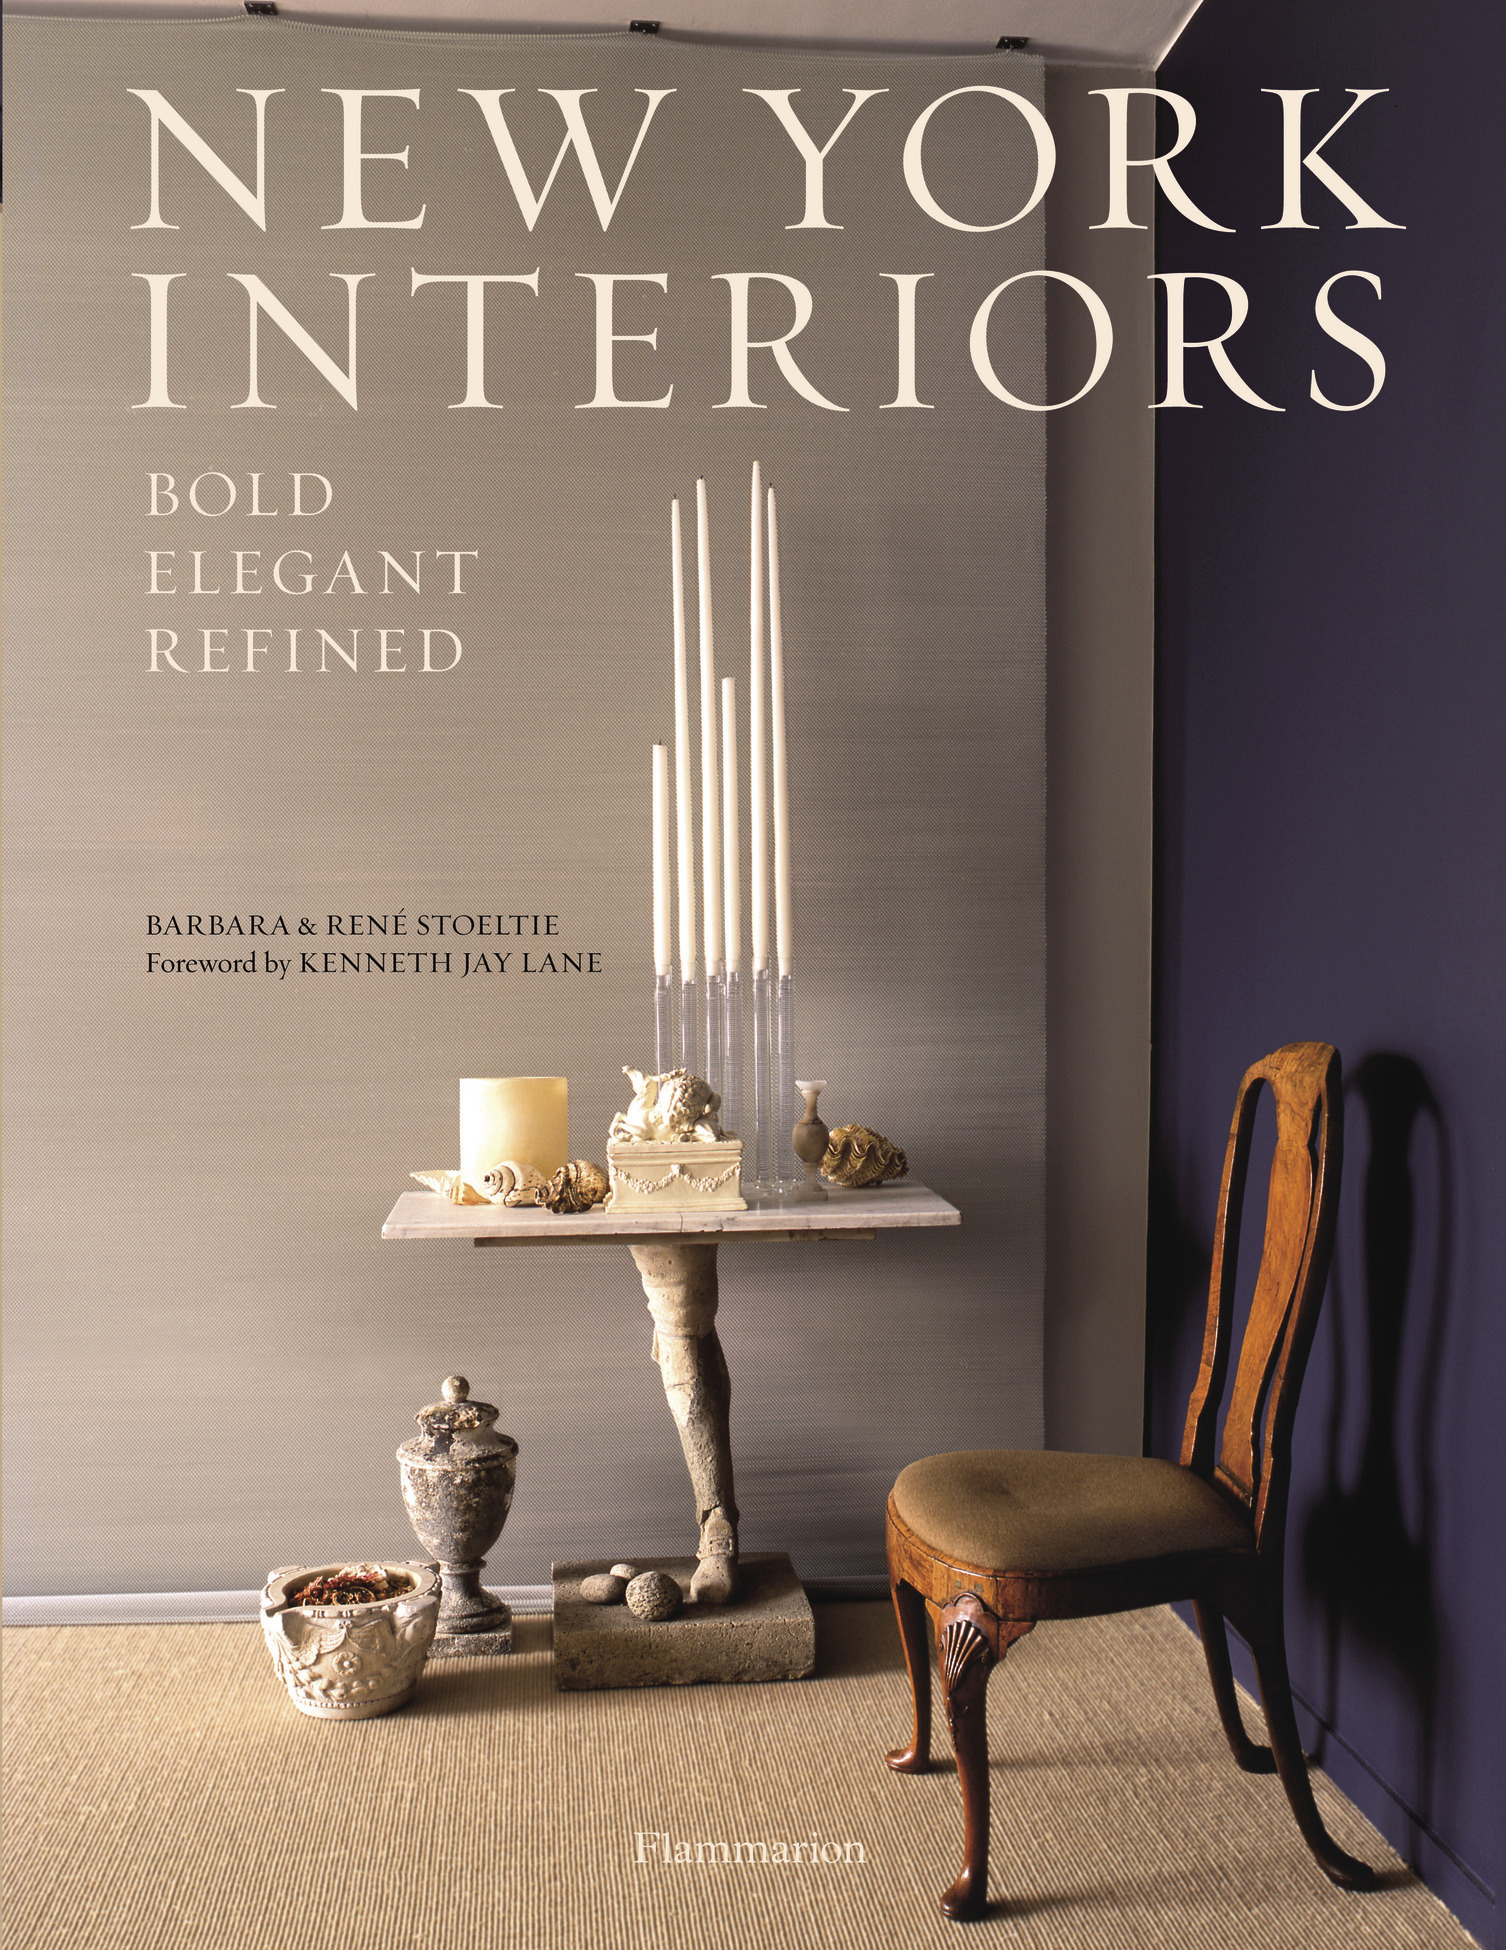 NEW YORK INTERIORS - BOLD, ELEGANT, REFINED